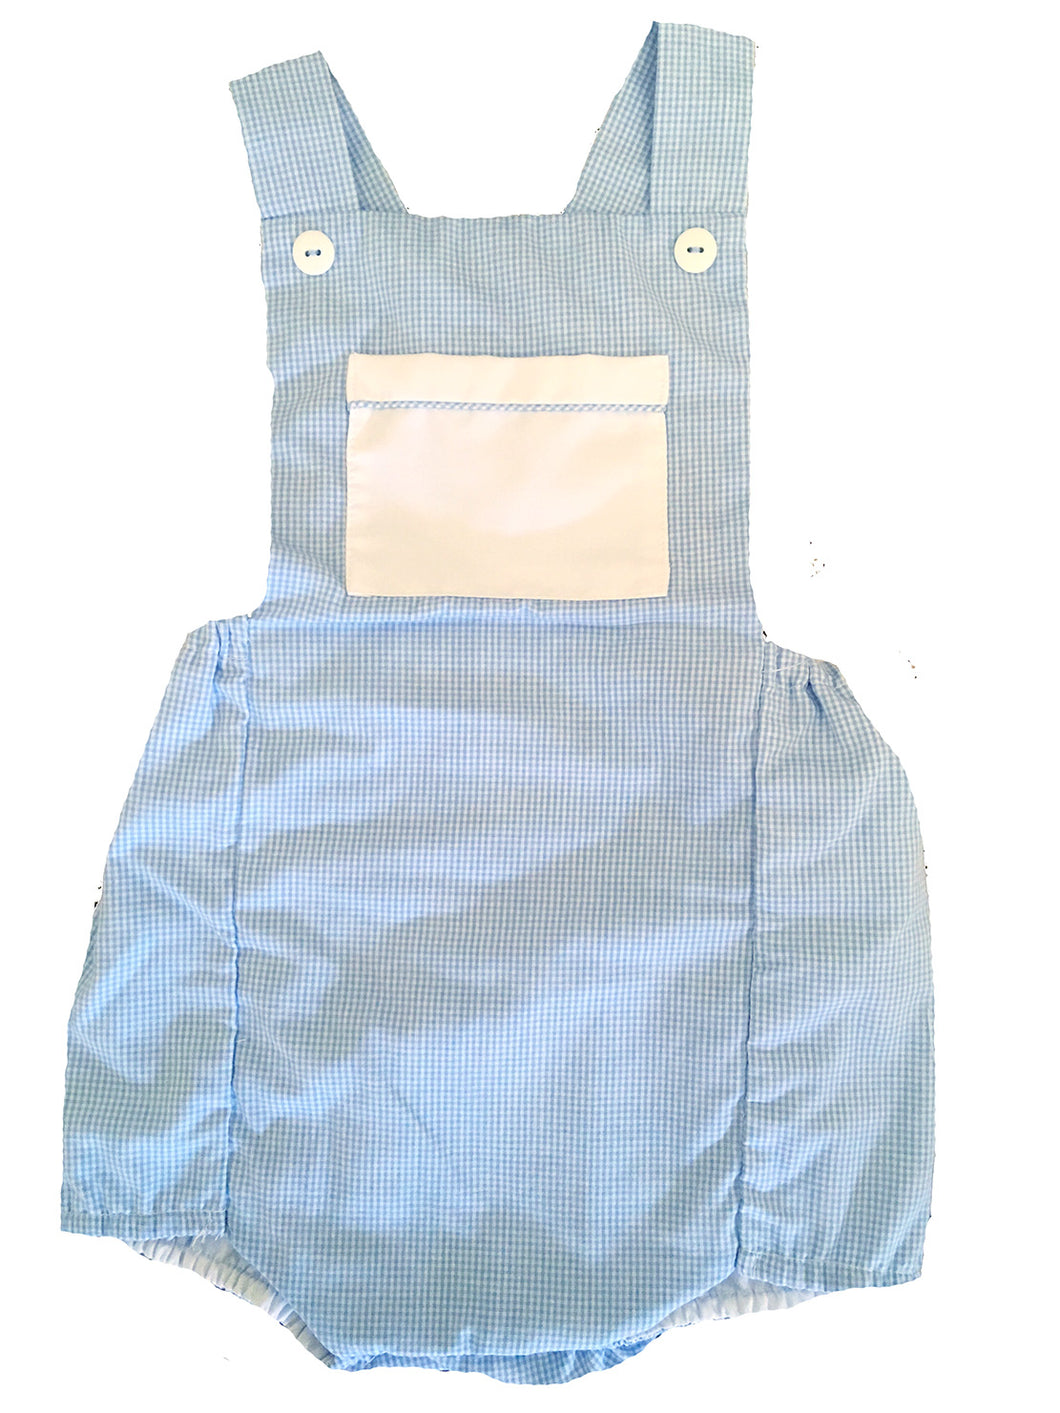 Blue & White Gingham Check Boys Sunsuit